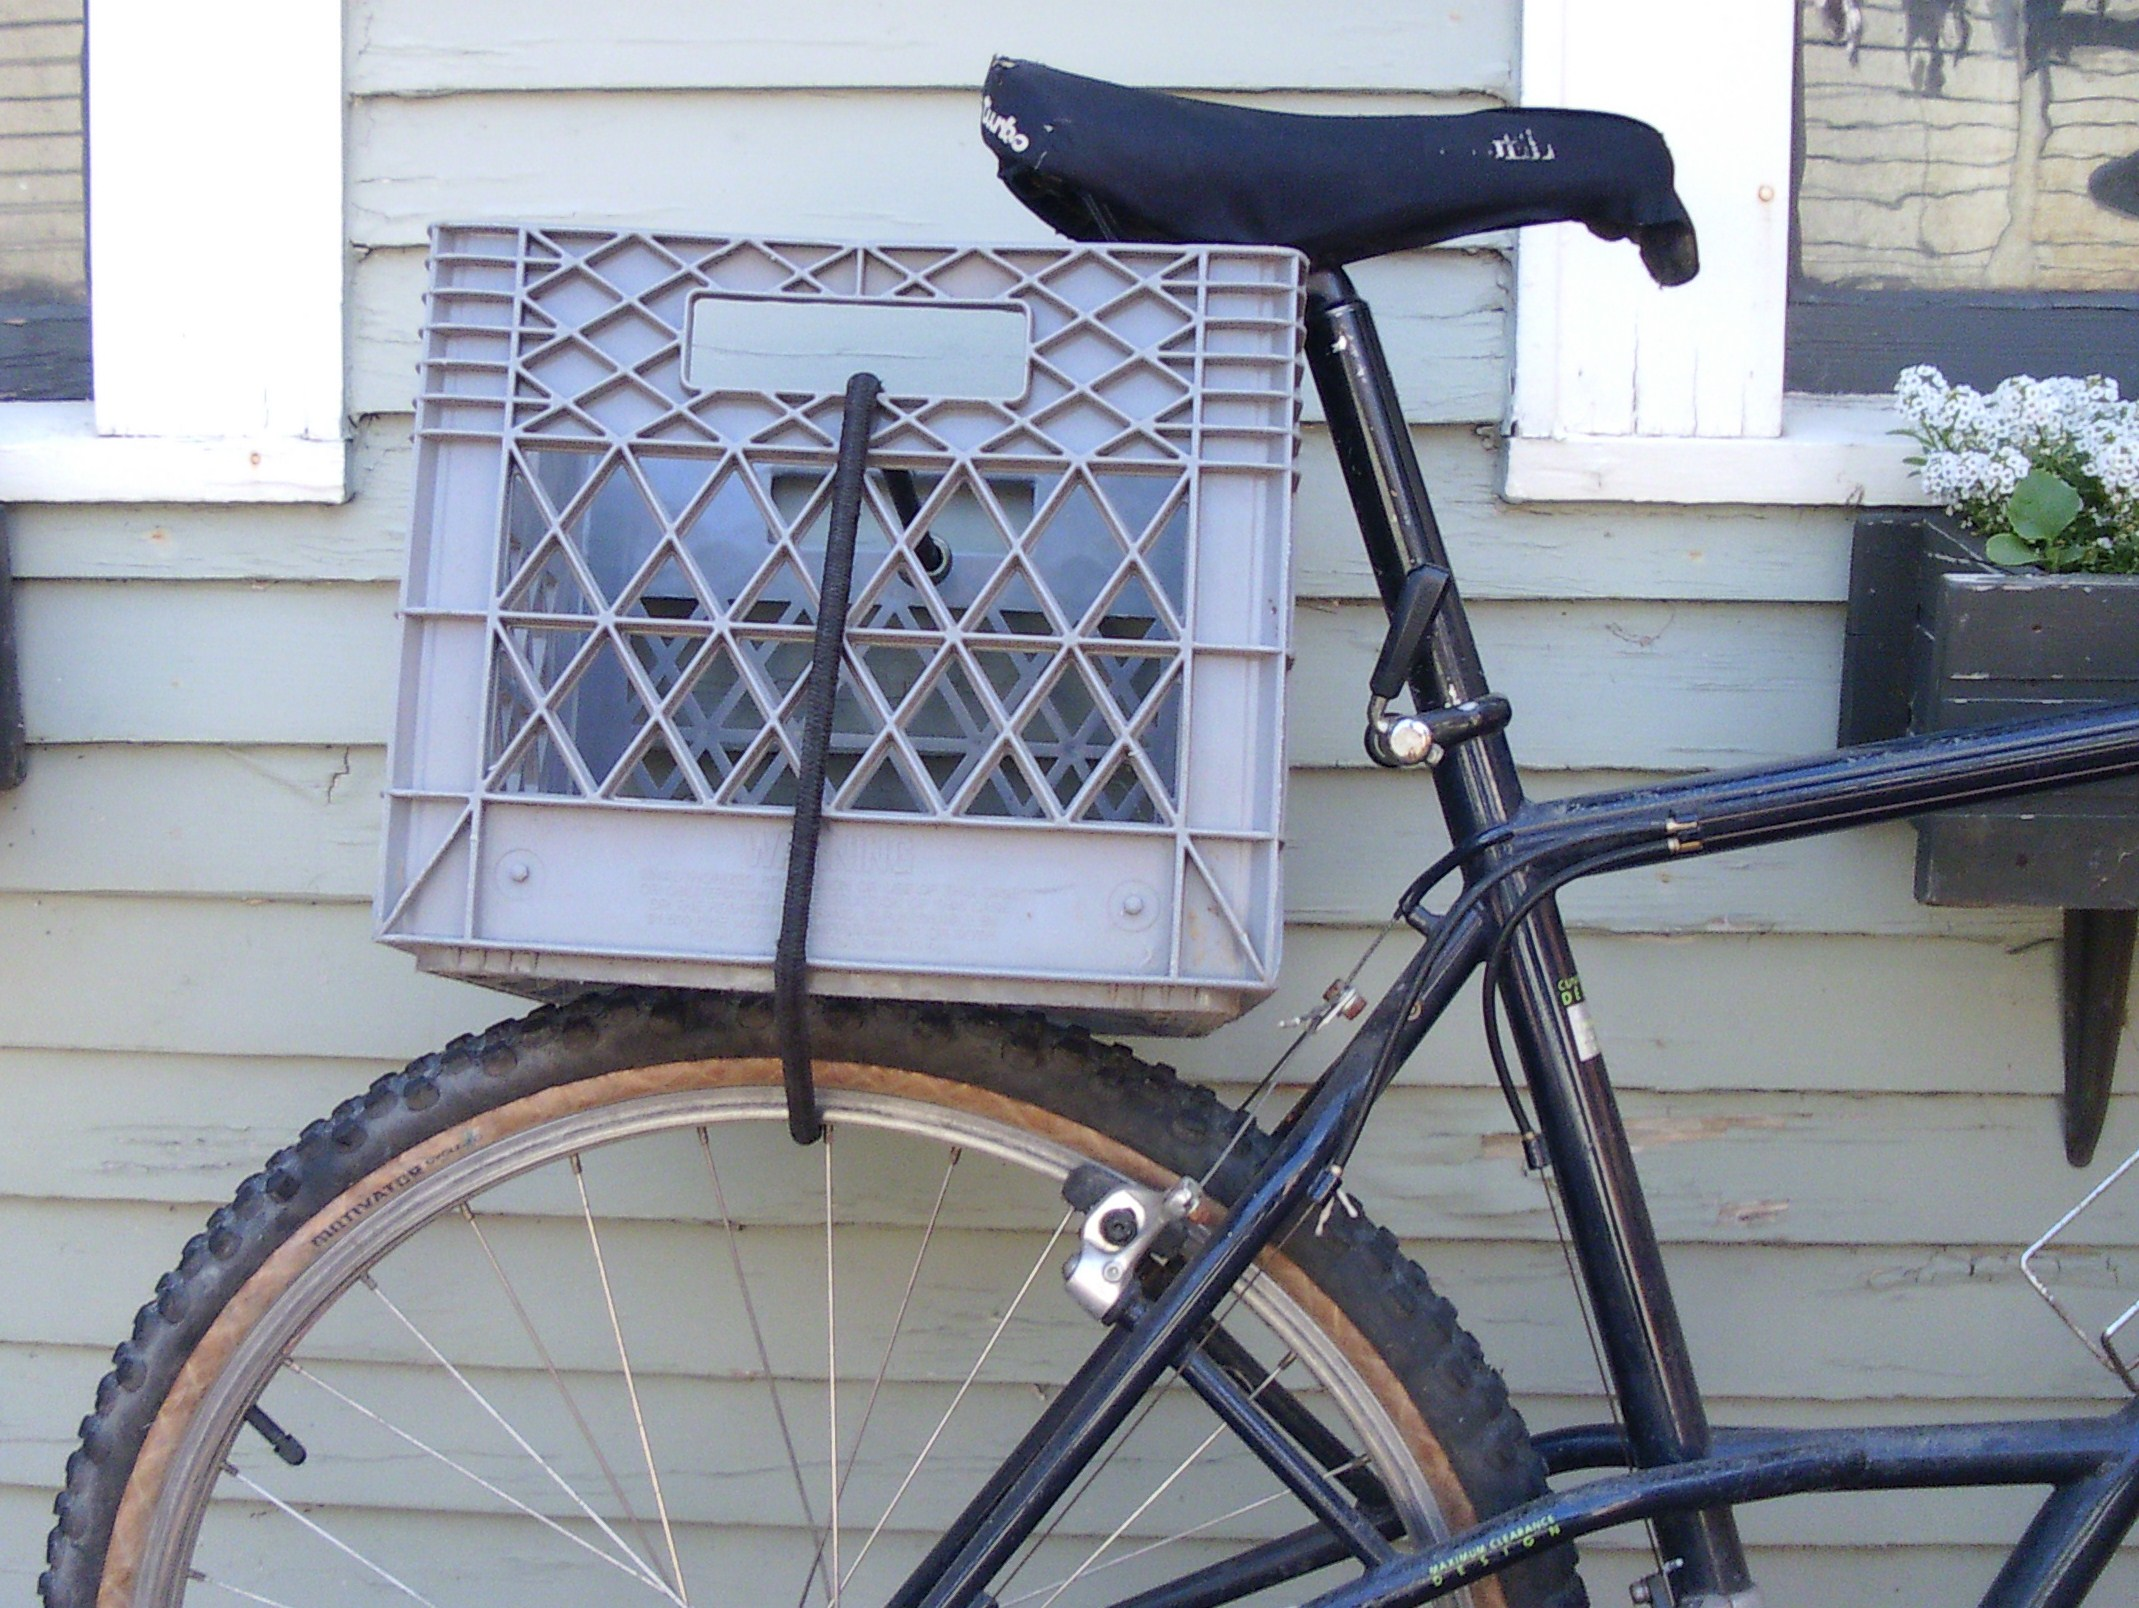 How To Attach Wine Crate Bike Rack Racks Blog Ideas